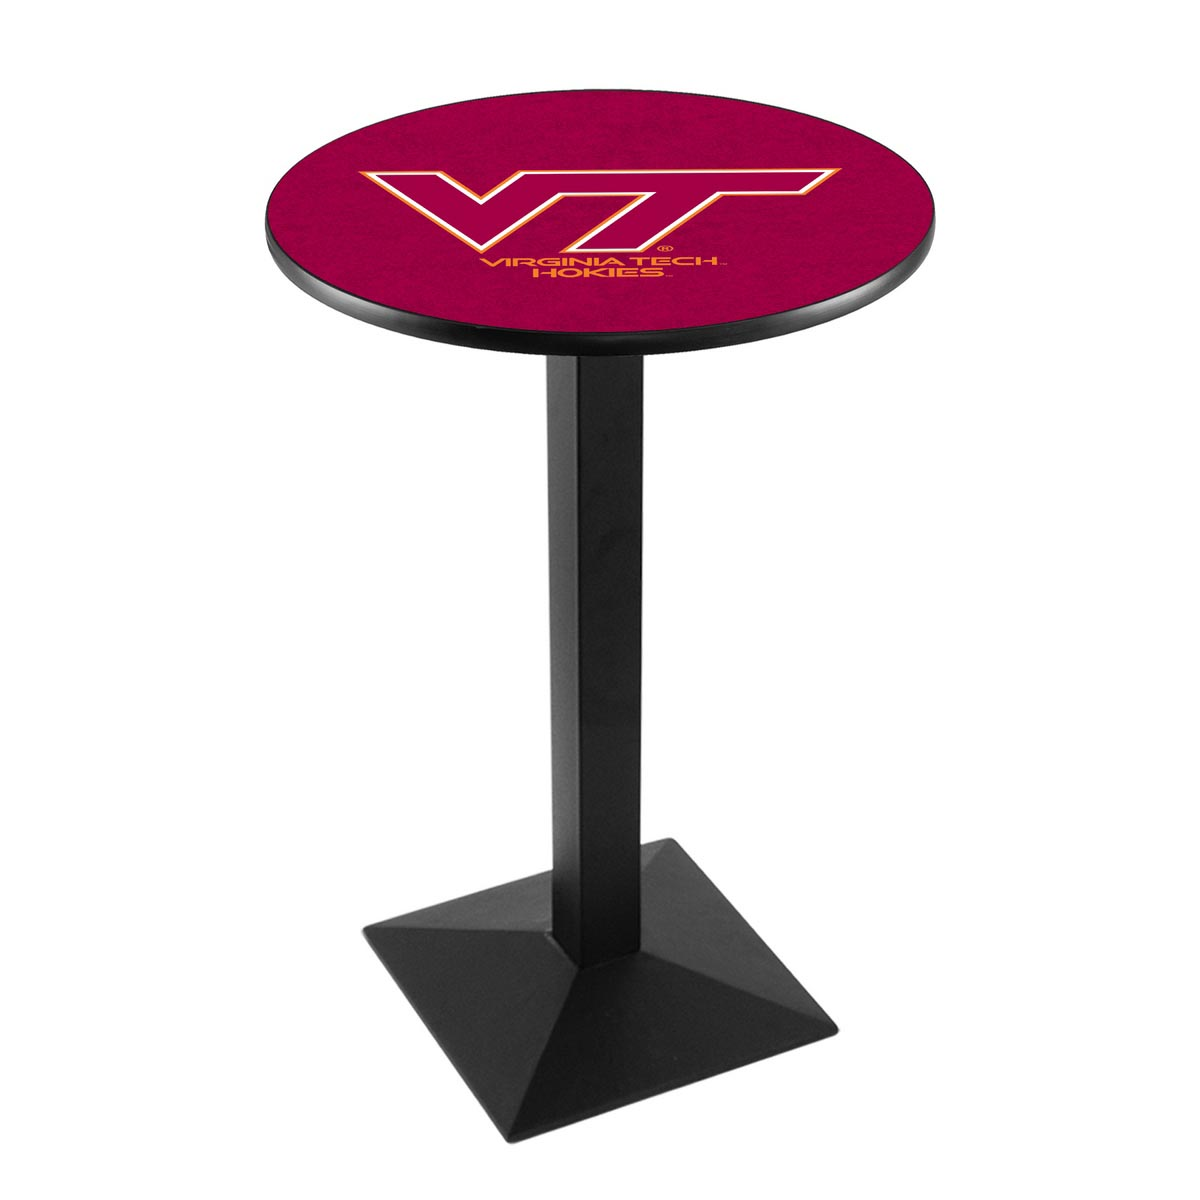 Impressive Virginia Tech University Logo Pub Bar Table Square Stand 4 392